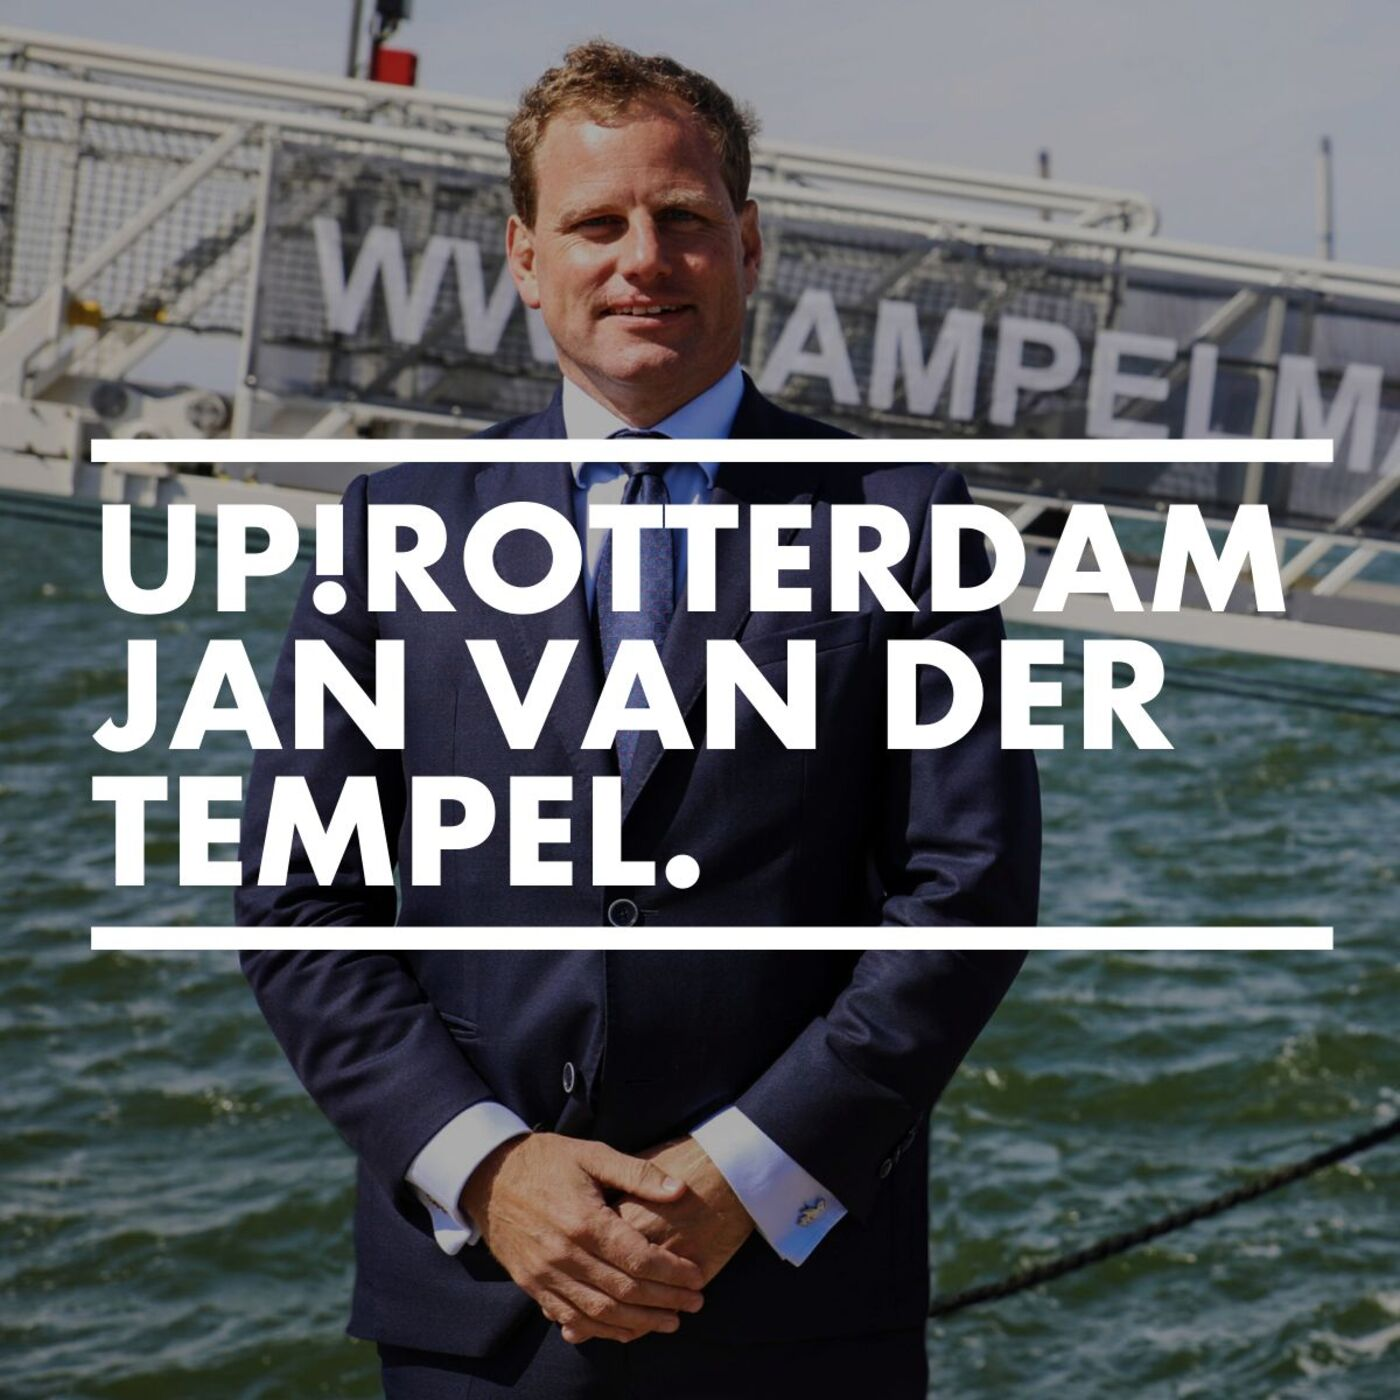 CEO Jan van der Tempel about his entrepreneurial journey with Ampelmann and everything about building and scaling a successful business.